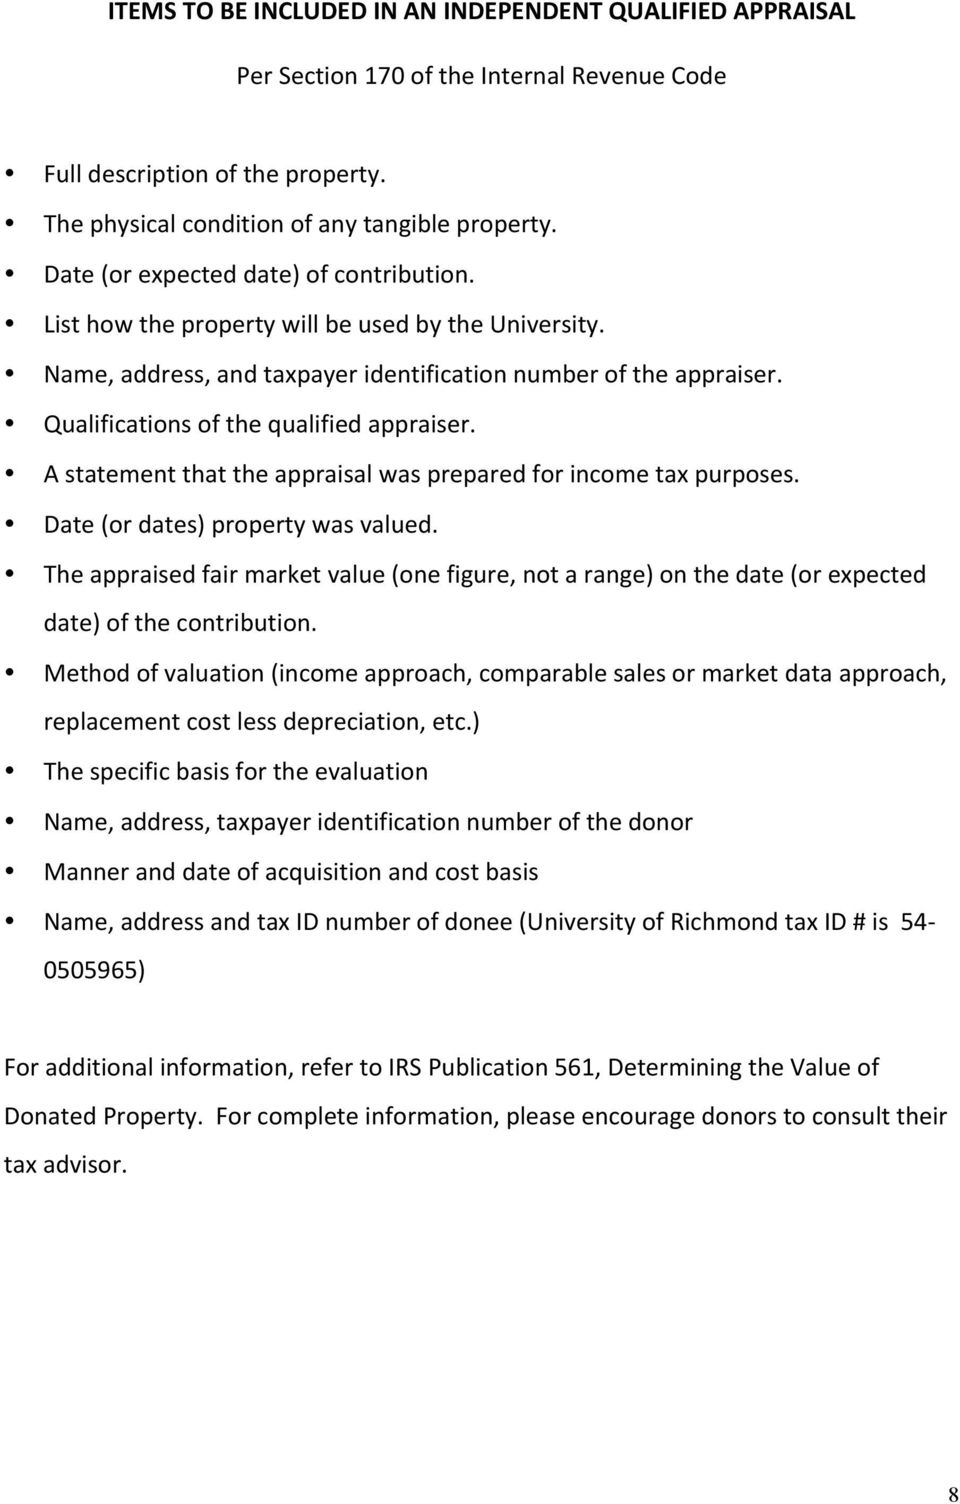 Qualifications of the qualified appraiser. A statement that the appraisal was prepared for income tax purposes. Date (or dates) property was valued.